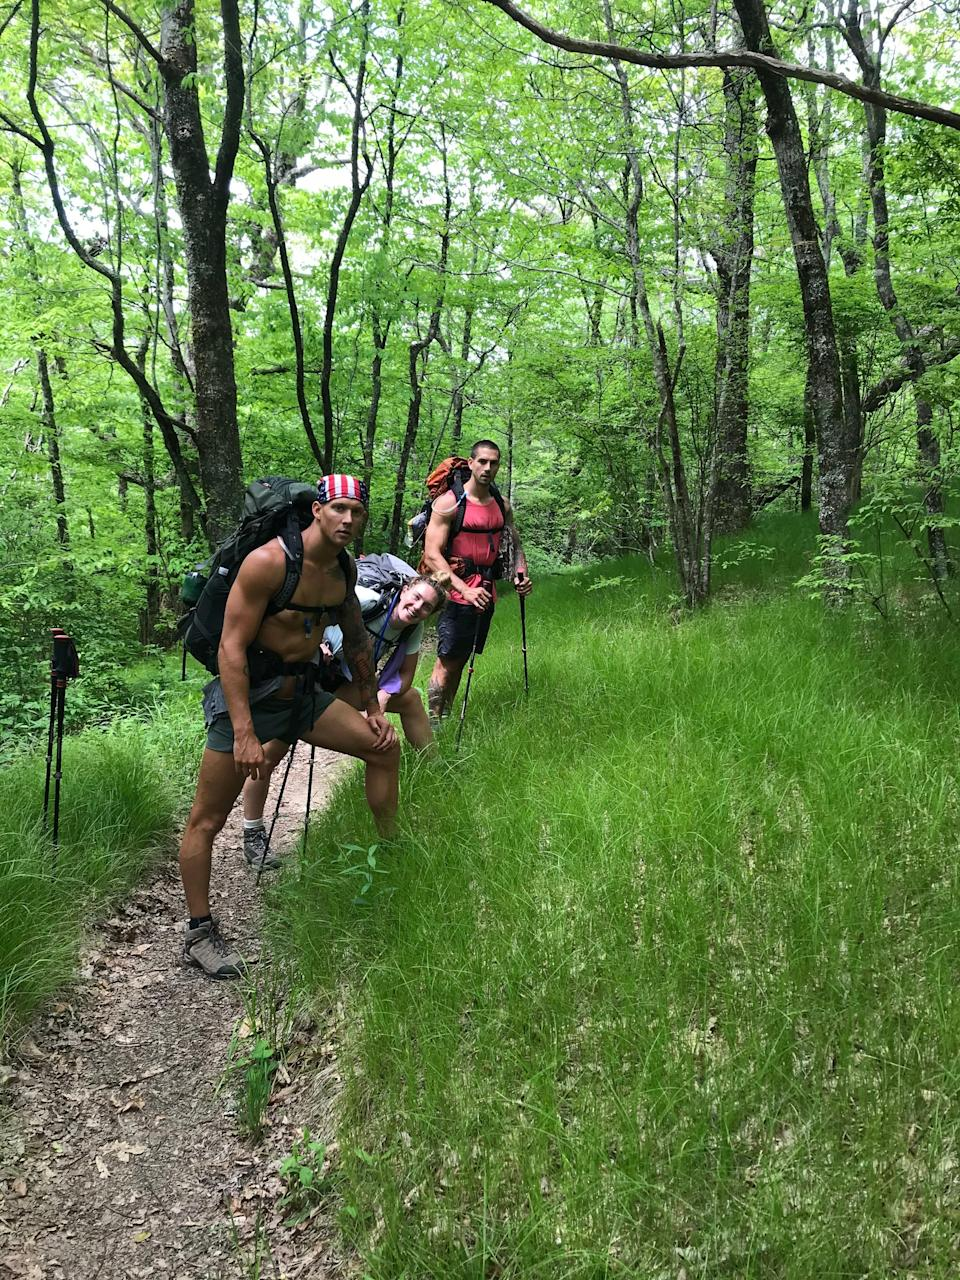 Olympic gold medalist Caeleb Dressel says hiking on the Appalachian Trail was a life-changing experience. He went on a trip with his siblings, Kaitlyn and Tyler.